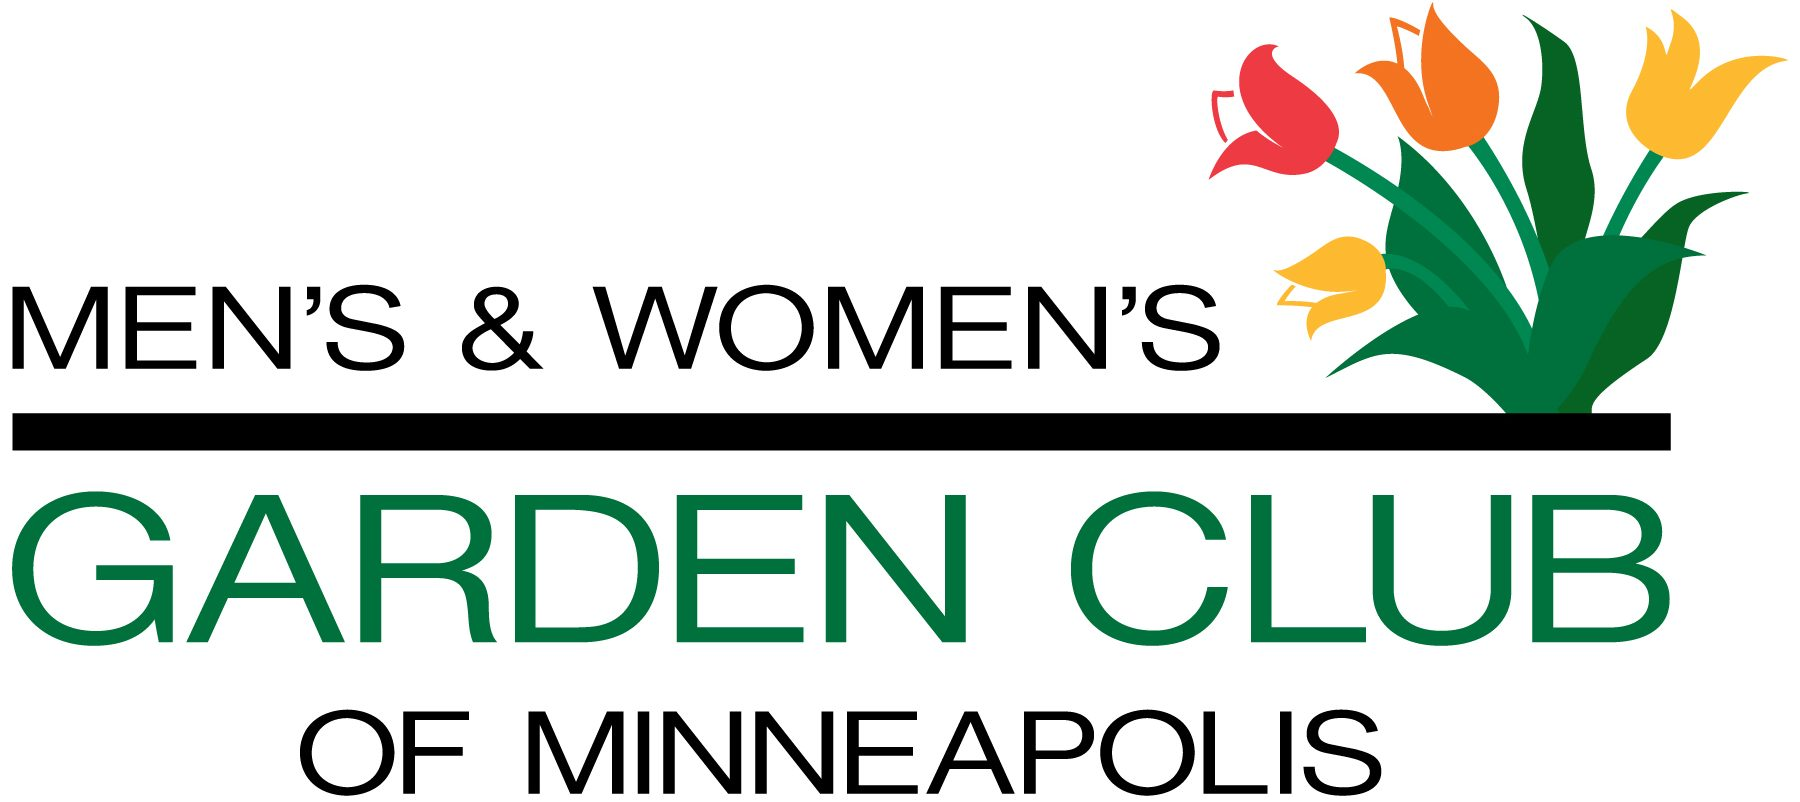 Men's & Women's Garden Club of Minneapolis